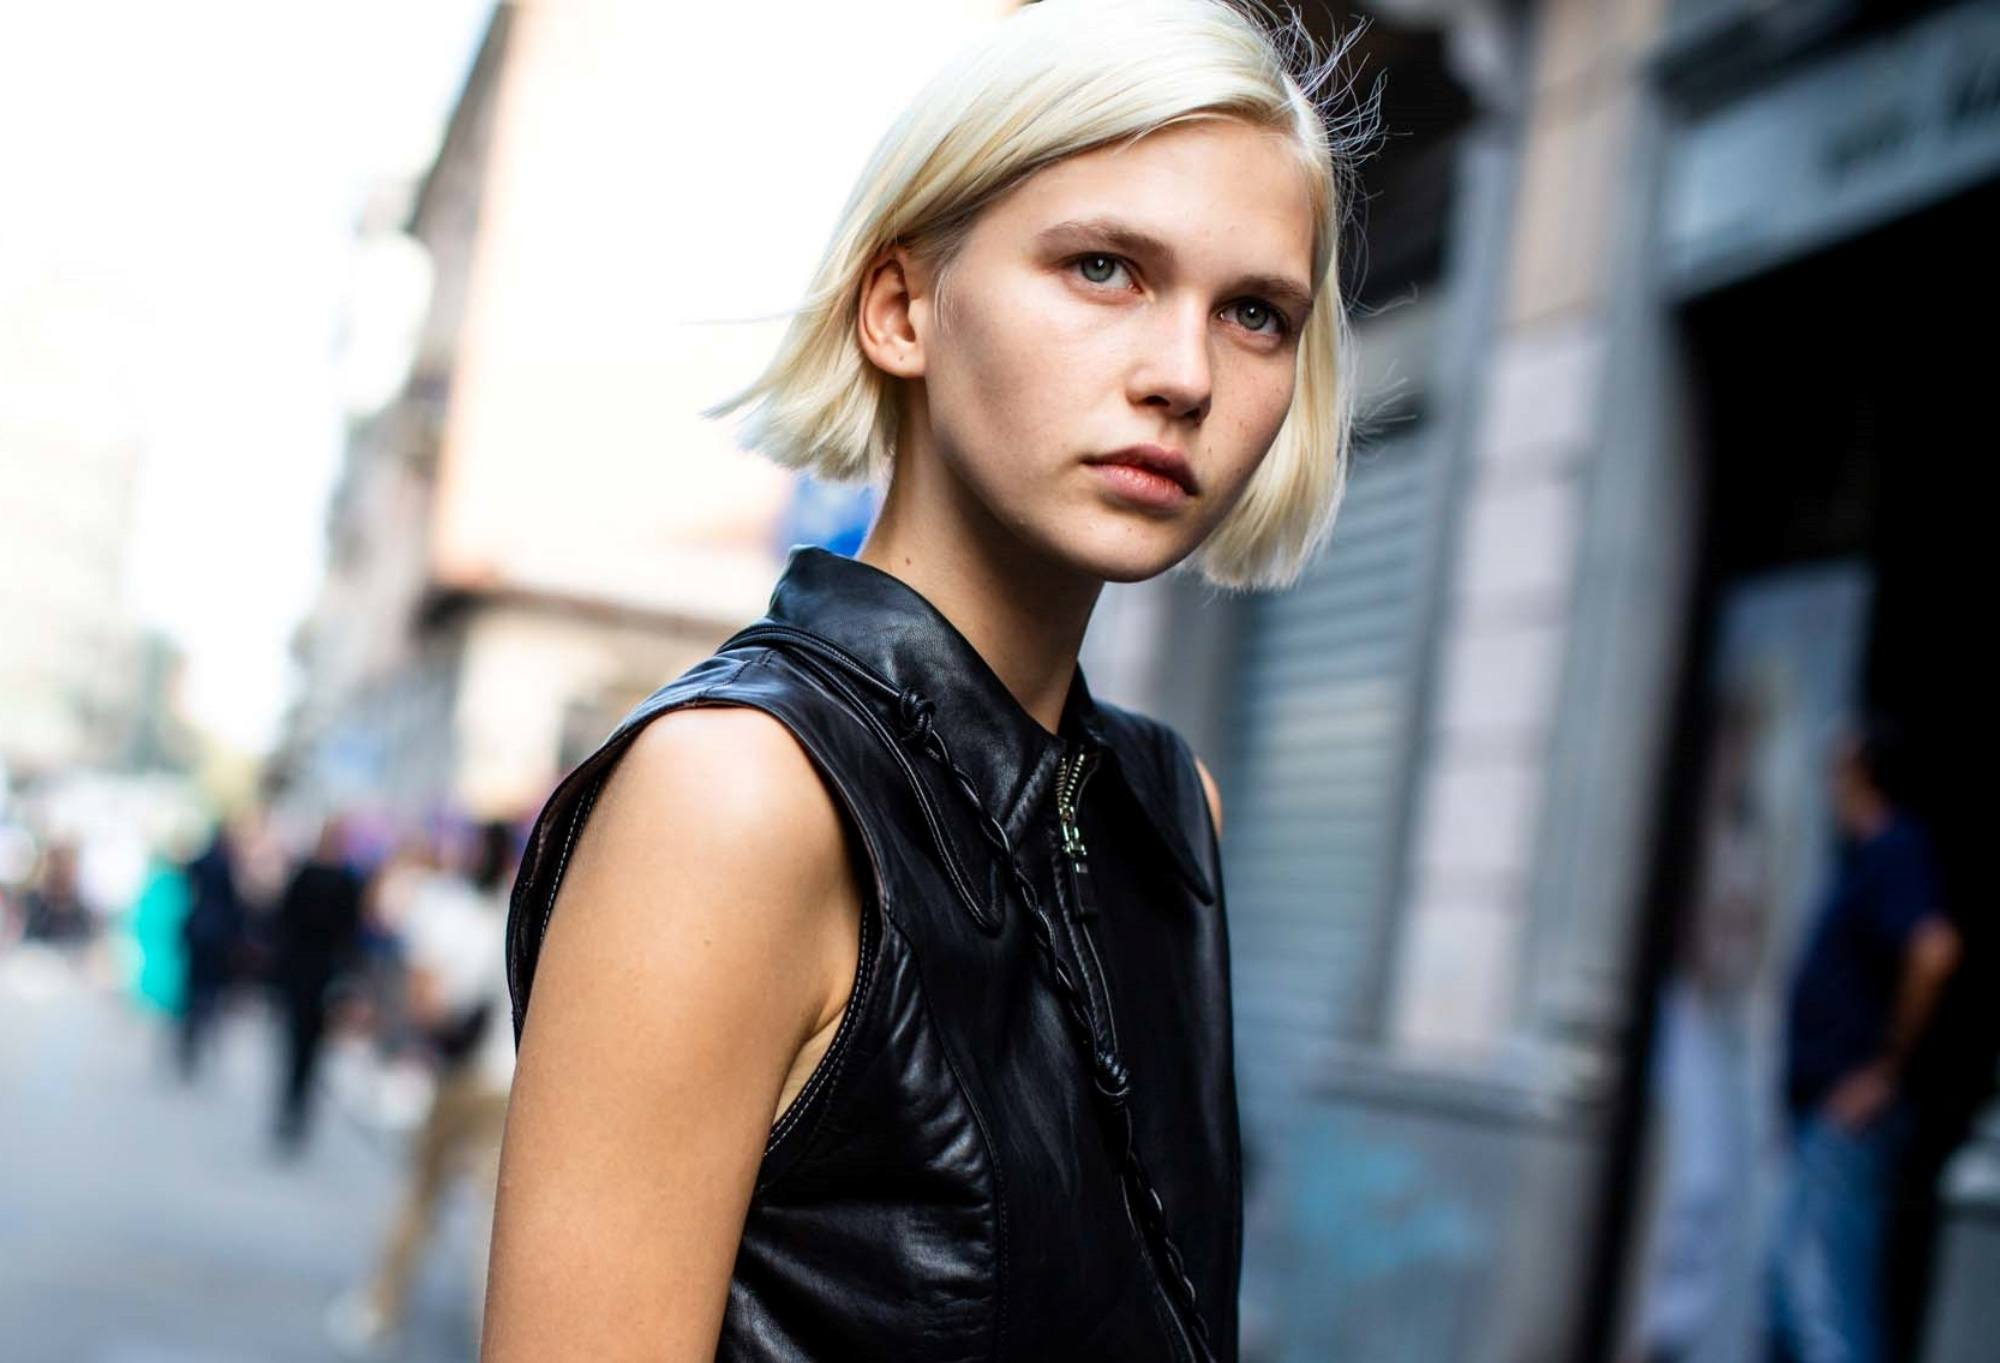 Straight bob: Closeup shot of a woman with short blonde hair wearing a sleeveless black top outdoors